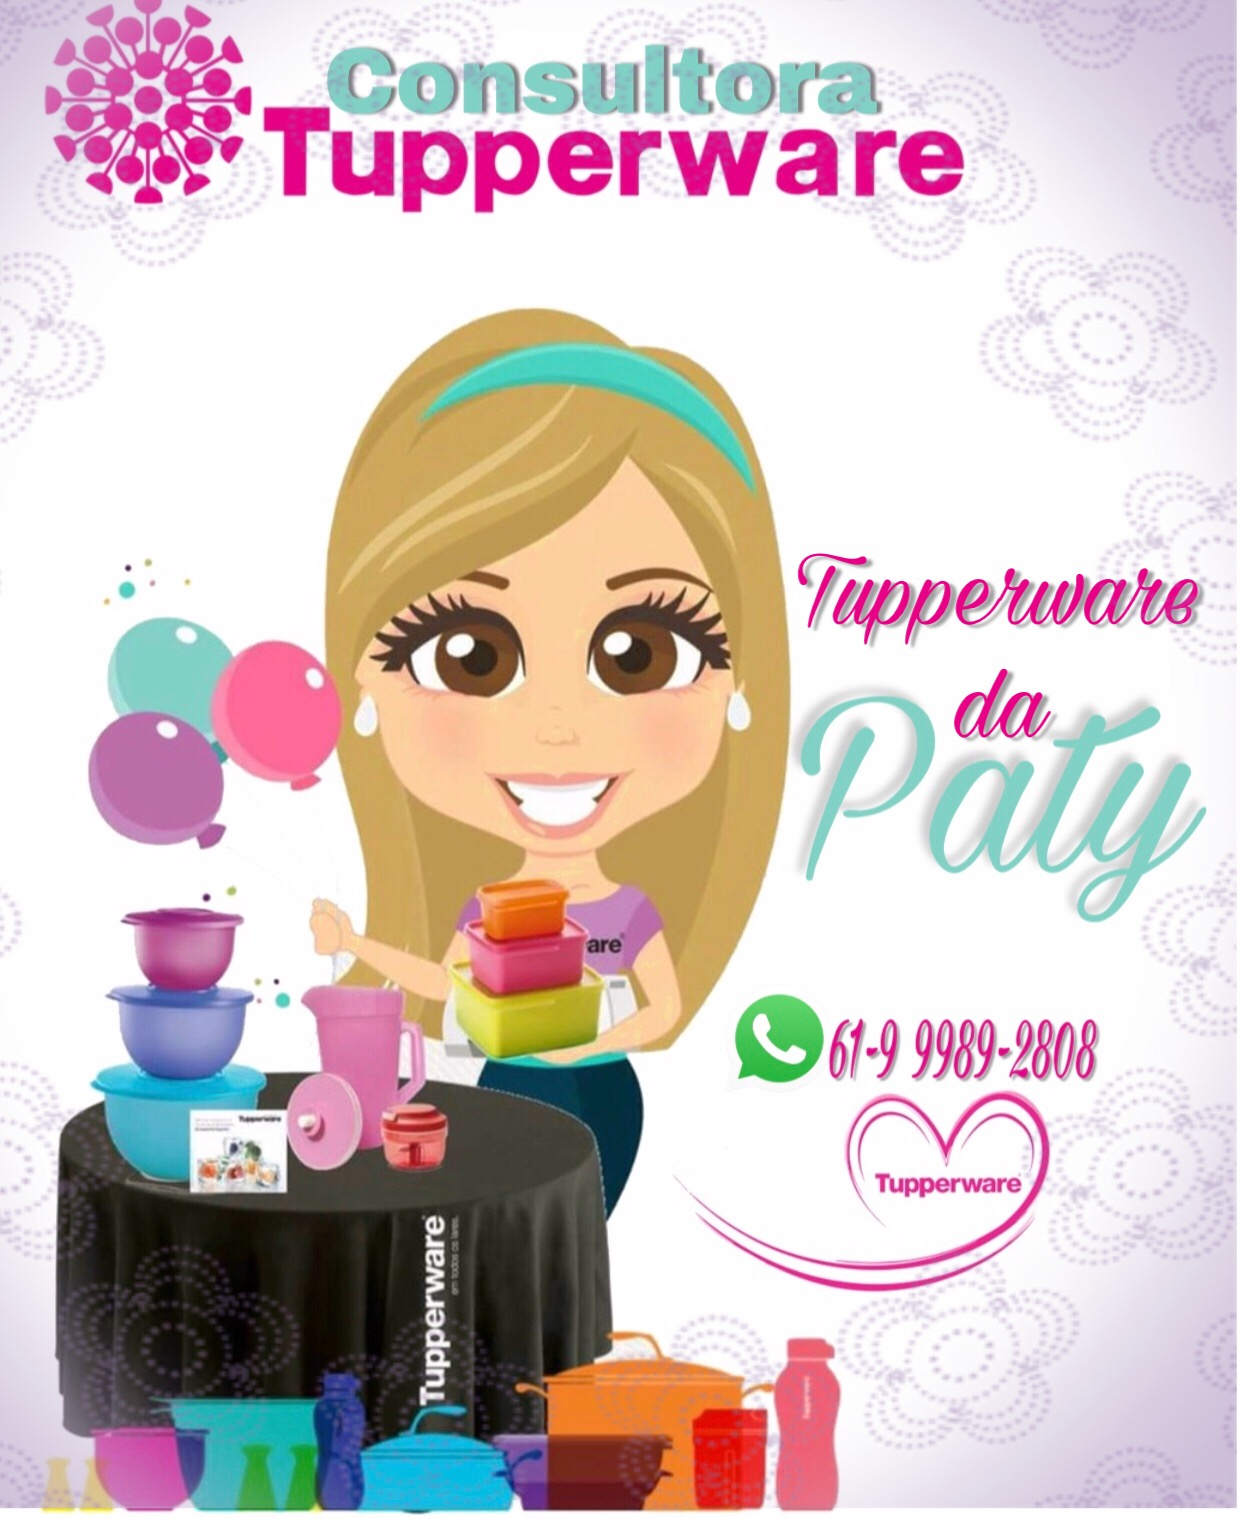 Tupperware da Paty